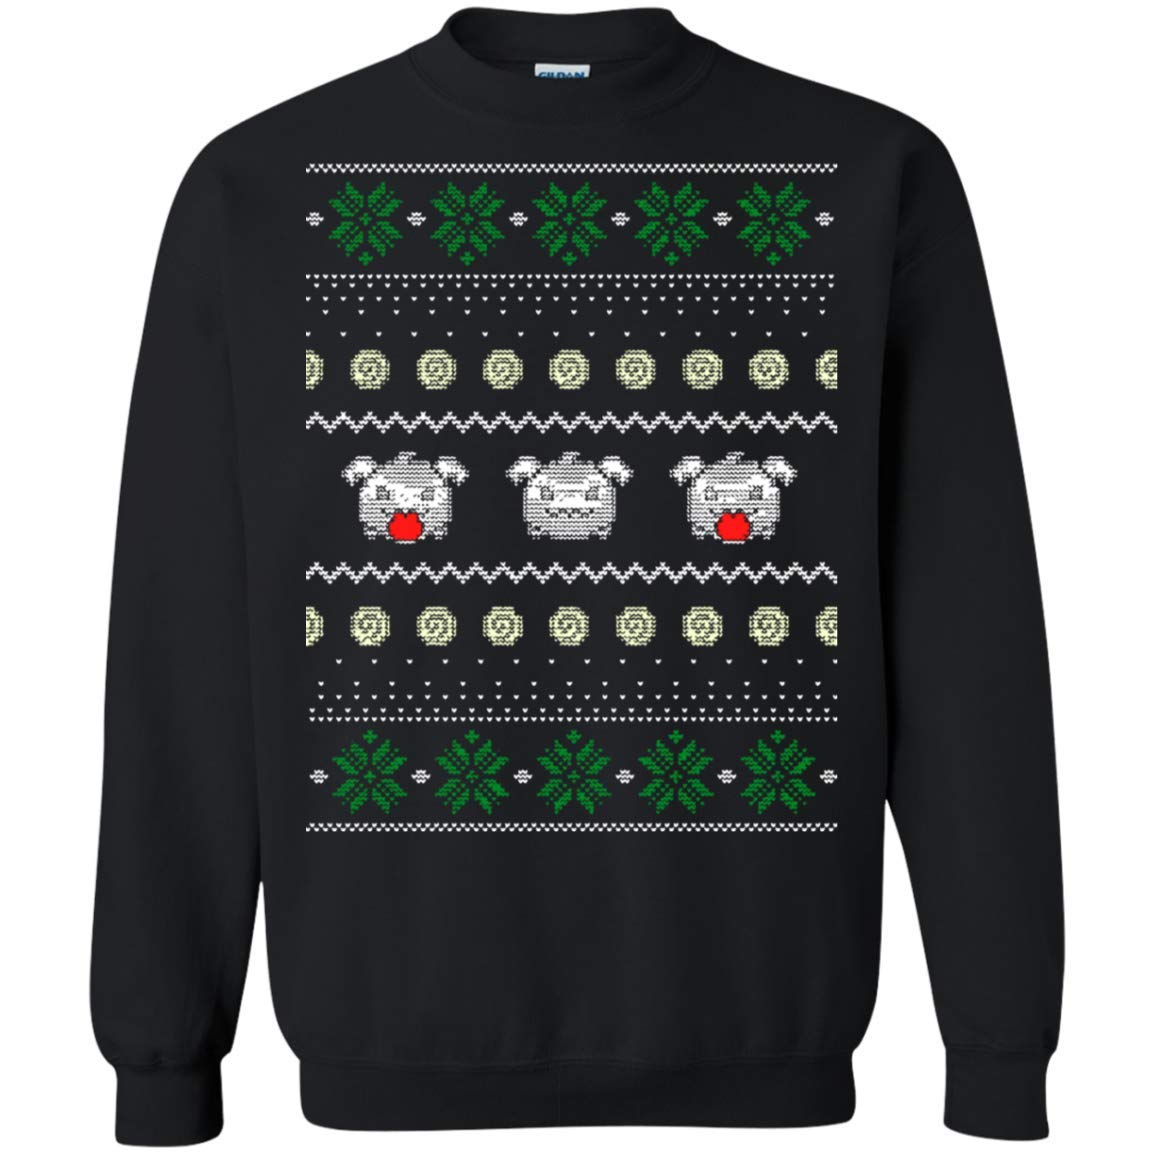 Poro Ugly Christmas Sweater League Of Legends Inspired Christmas Gamer Jumper League Ugly